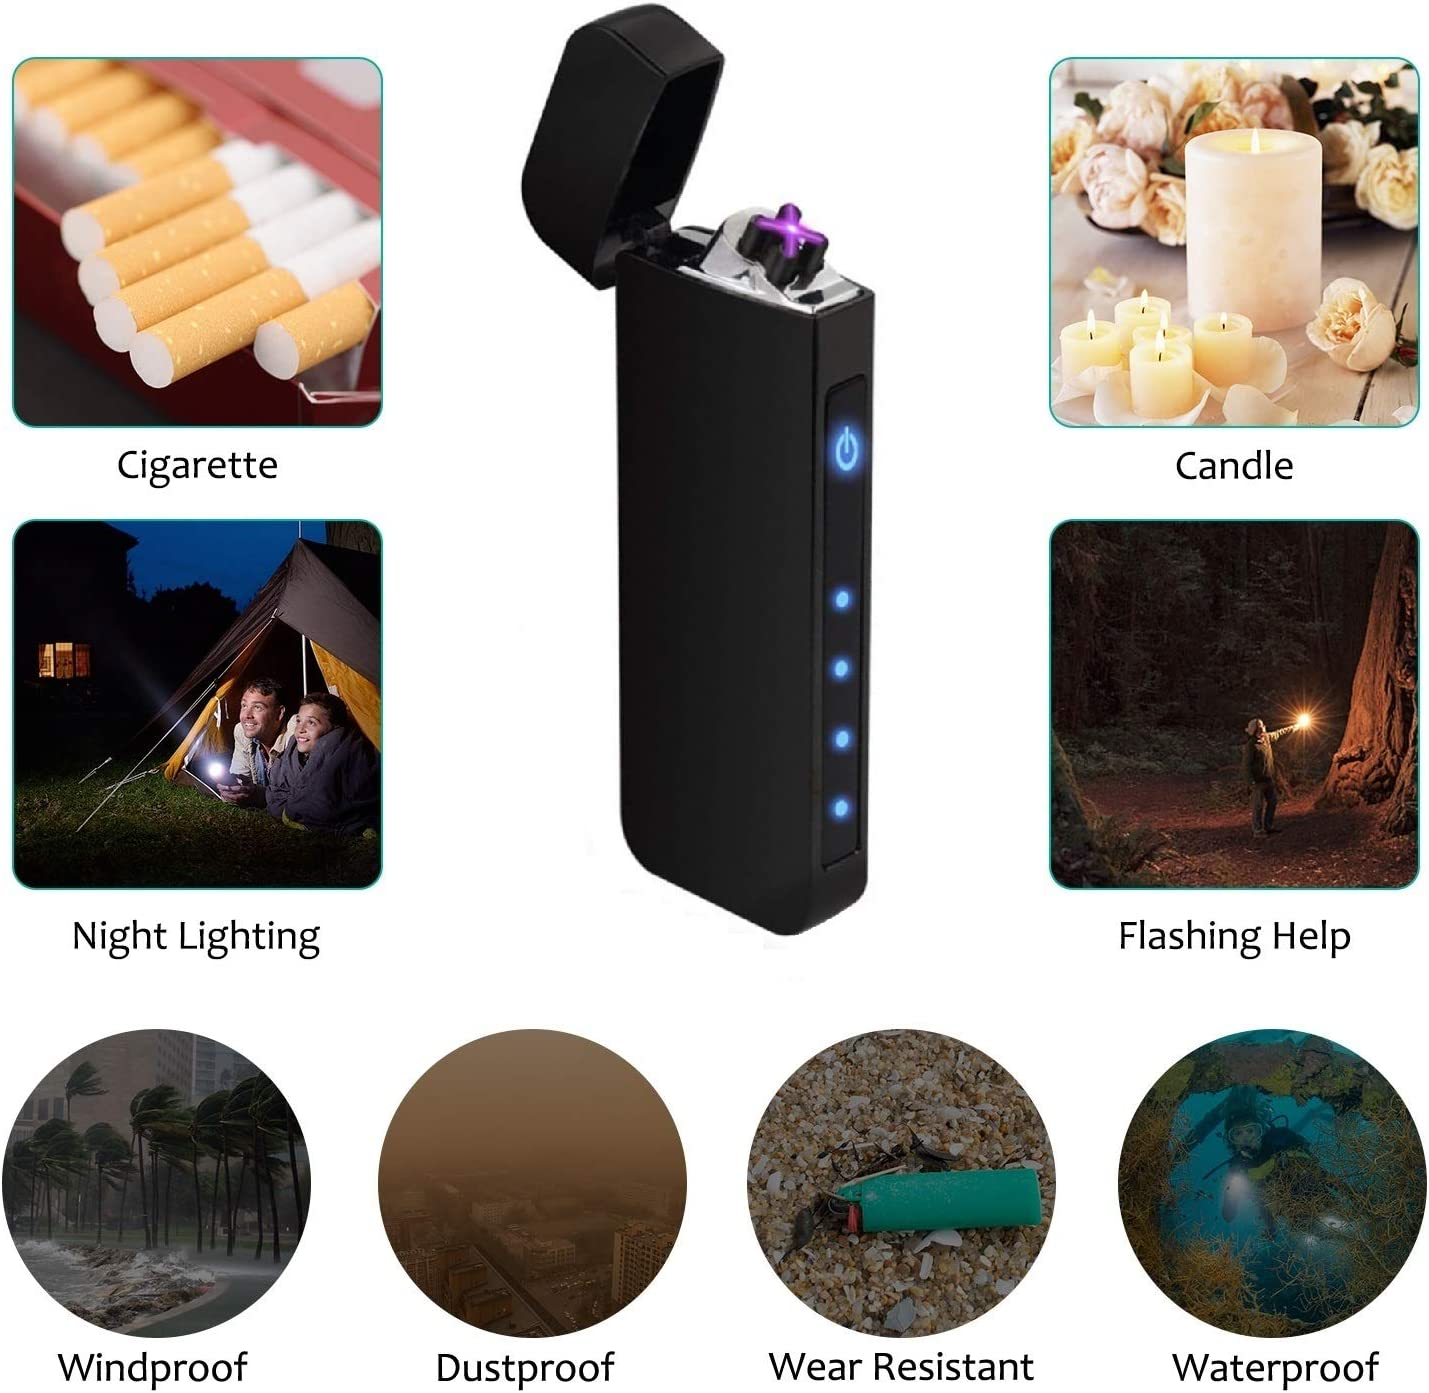 Electric Touch Switch Lighter Upgrade Version with Power Indicator for Ignition Outdoor BBQ Funxim Lighter Windproof Plasma Igniter Candle USB Rechargeable Double Arc Lighter Kitchen